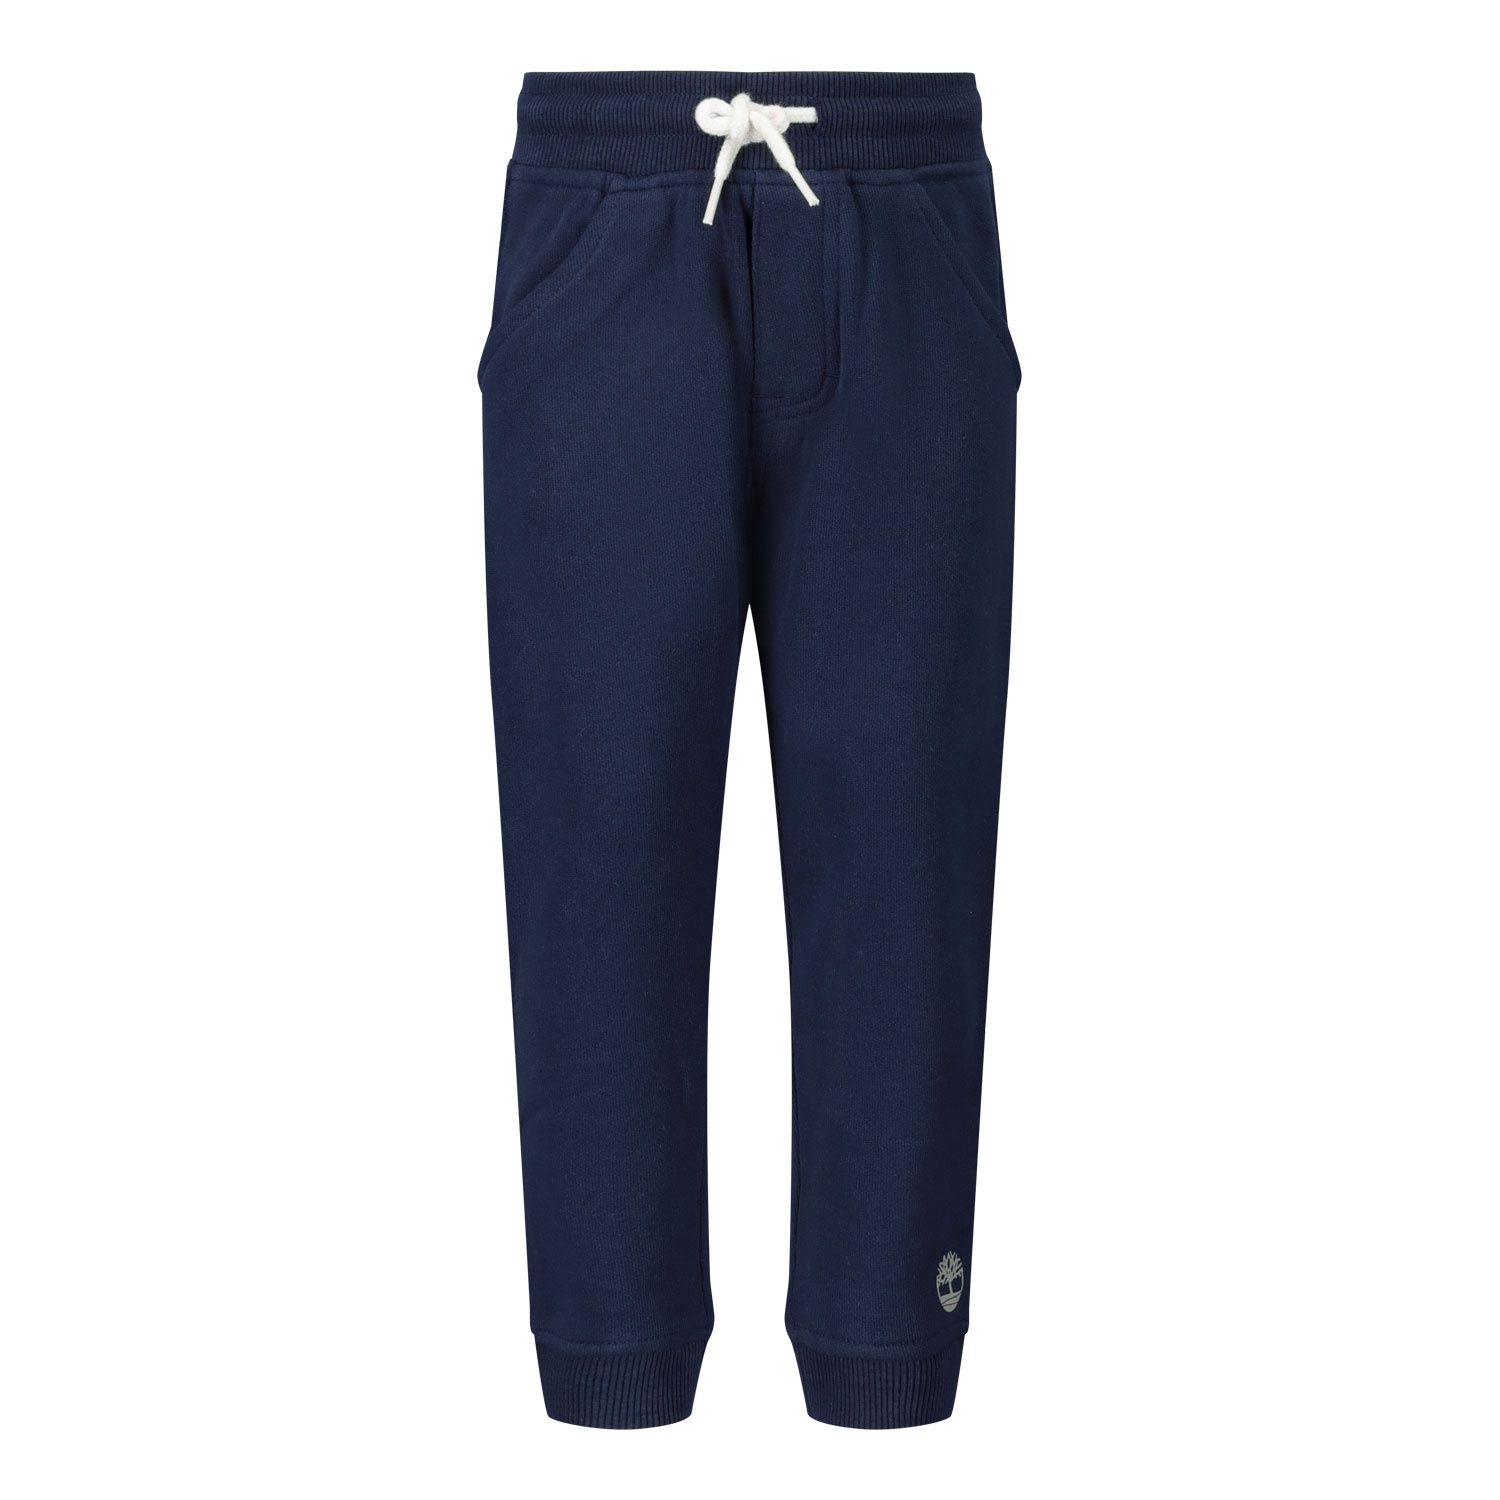 Picture of Timberland T04964 baby pants navy